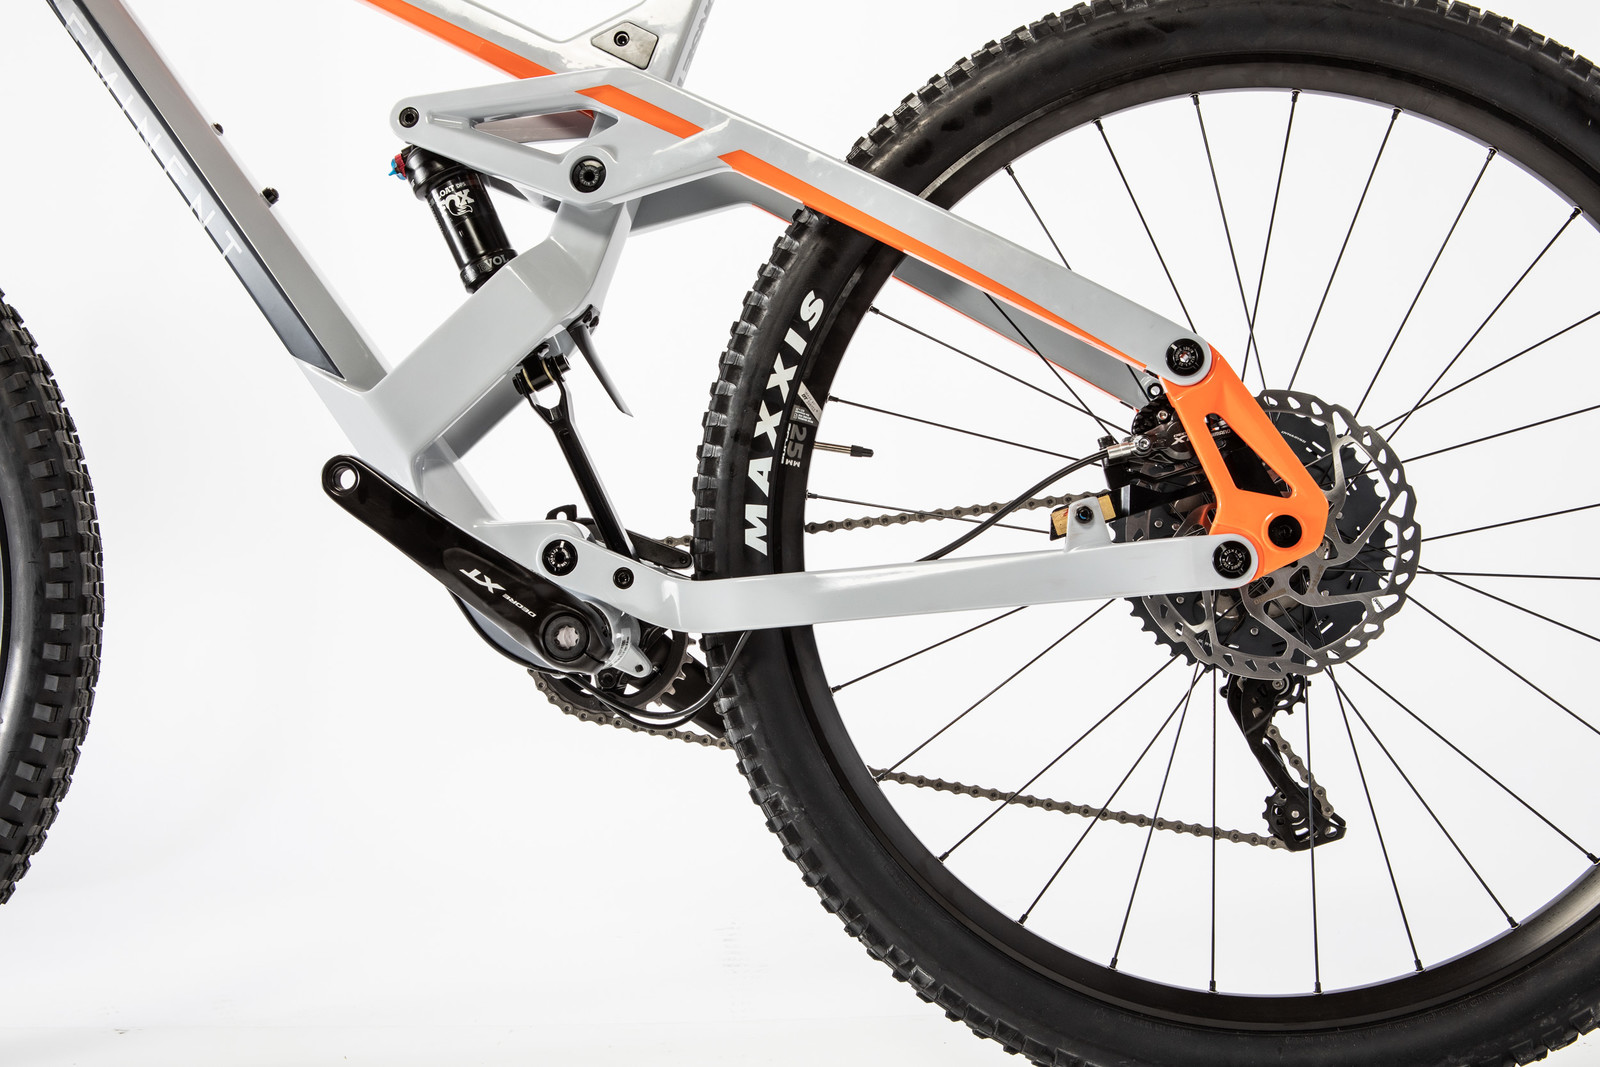 Eminent Cycles – The Story Behind AFS